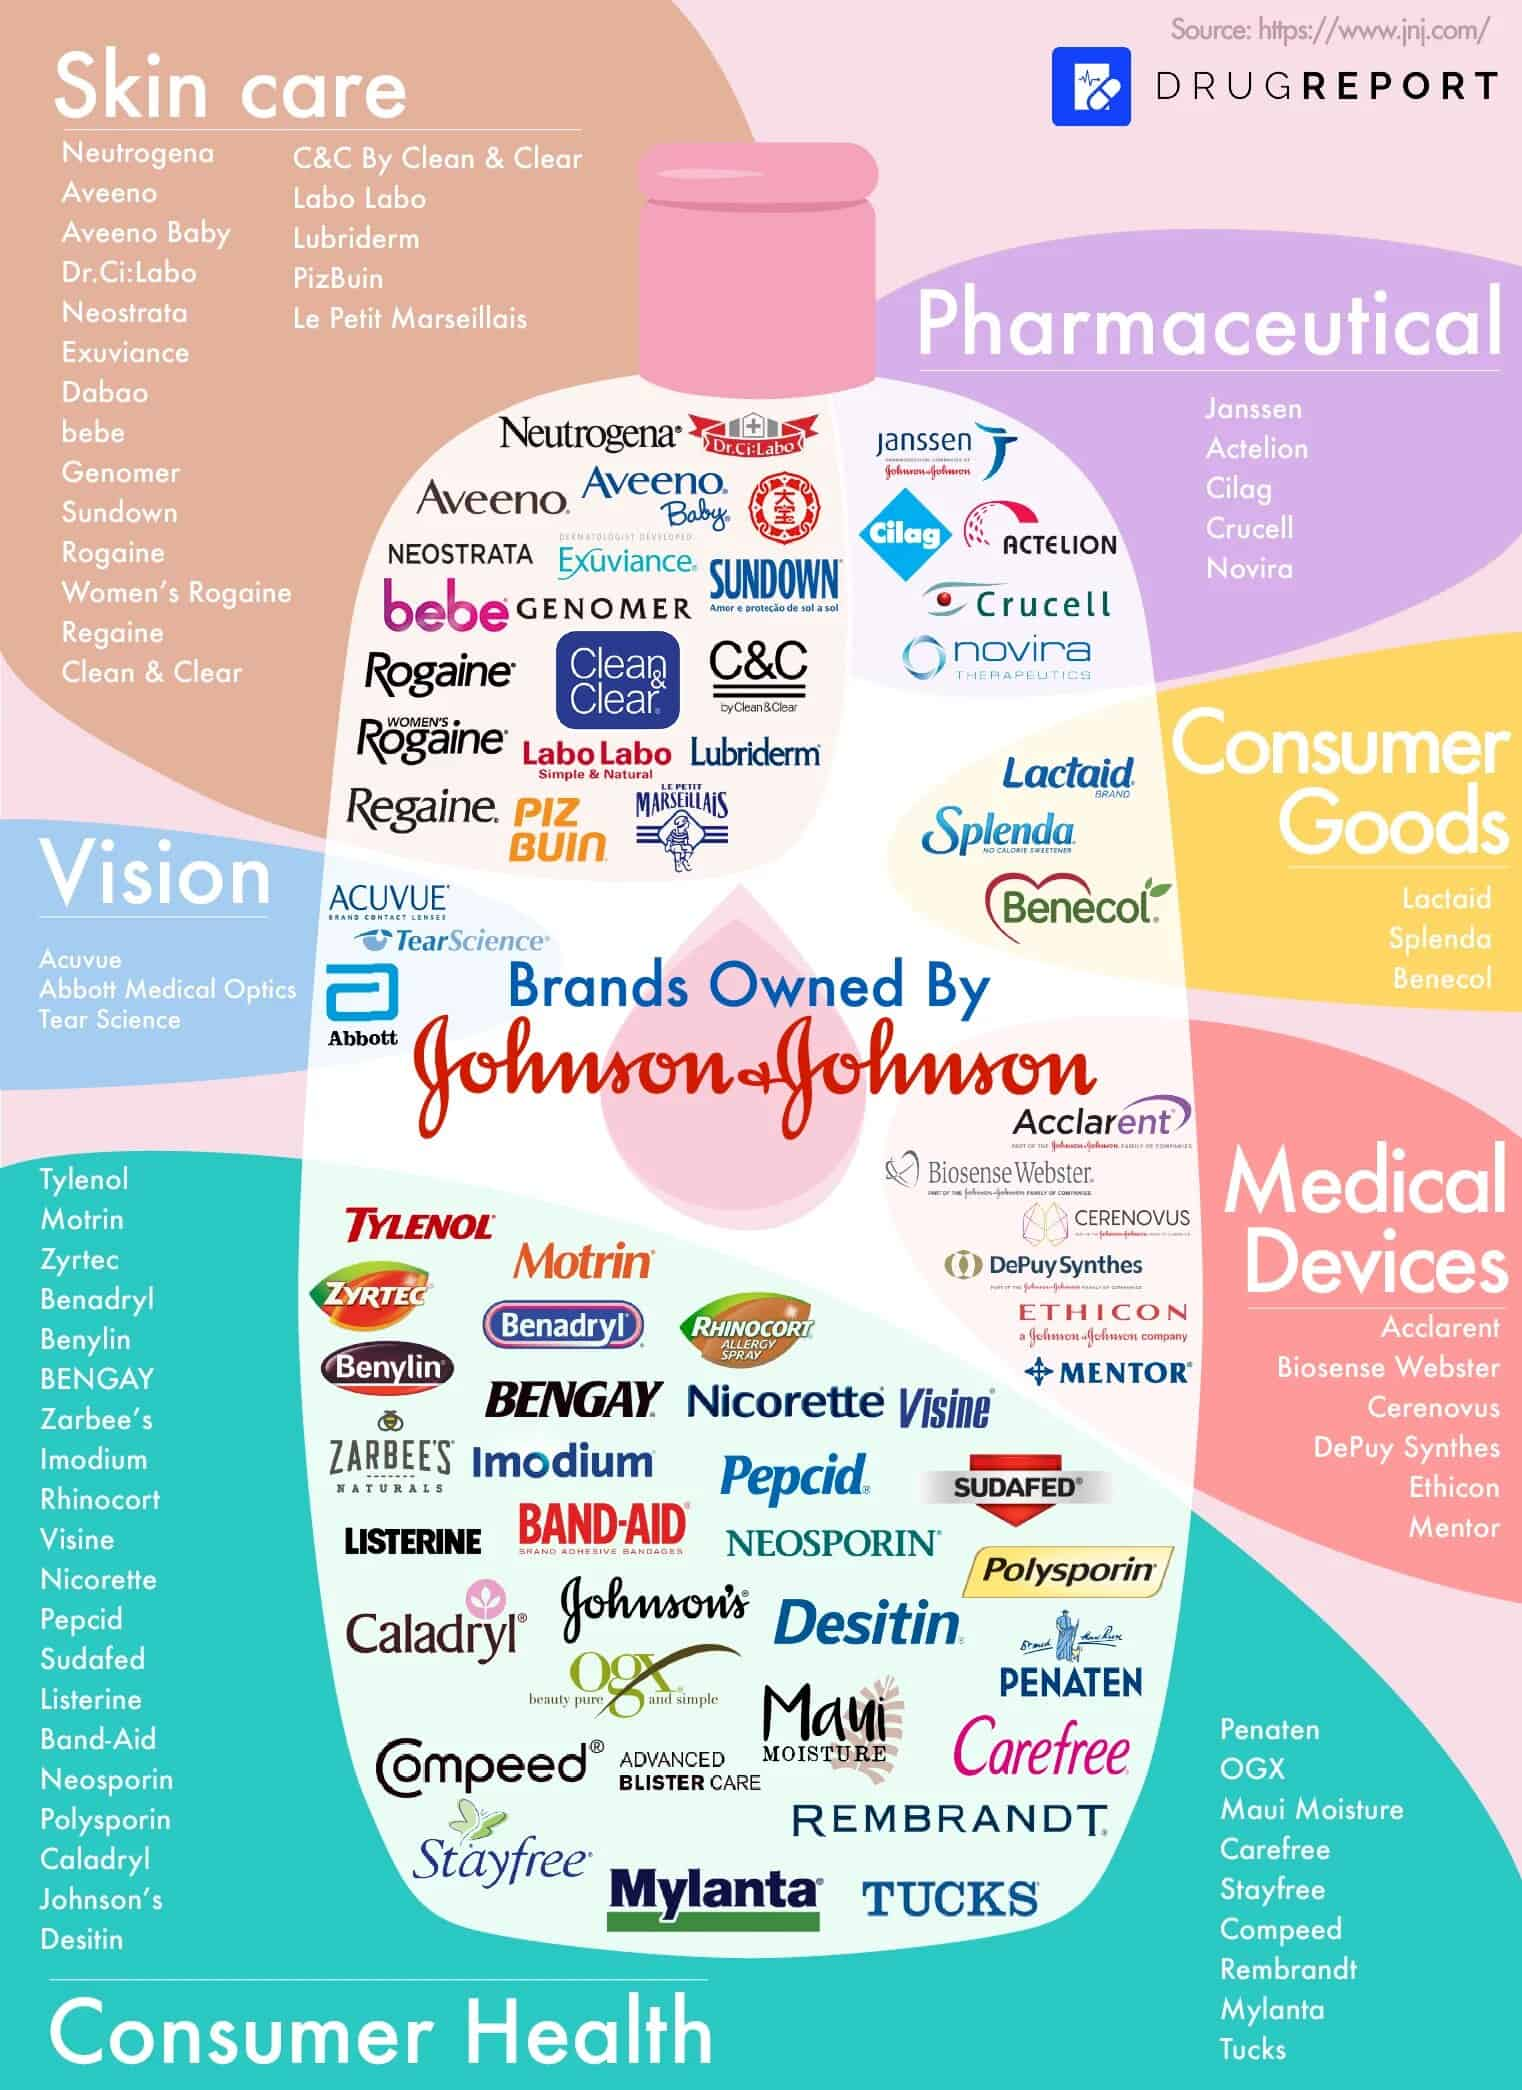 Every Major Brand That is Owned by Johnson & Johnson